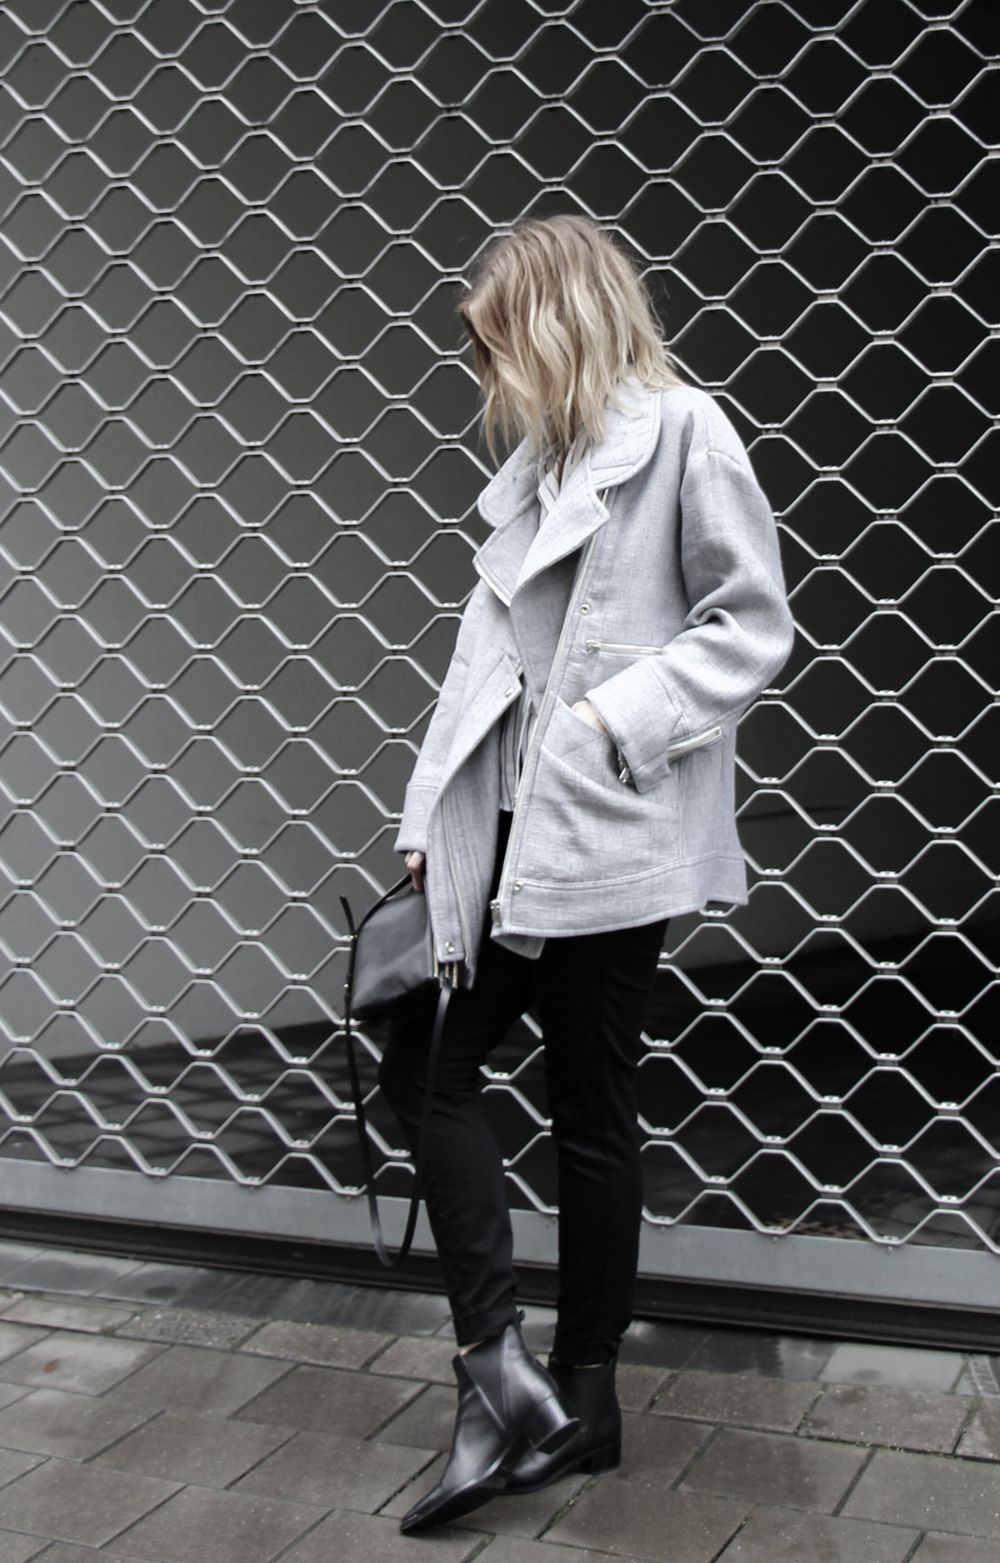 Iro grey spring coat via D a m o y . E - s h o p. Click on the image to see more!